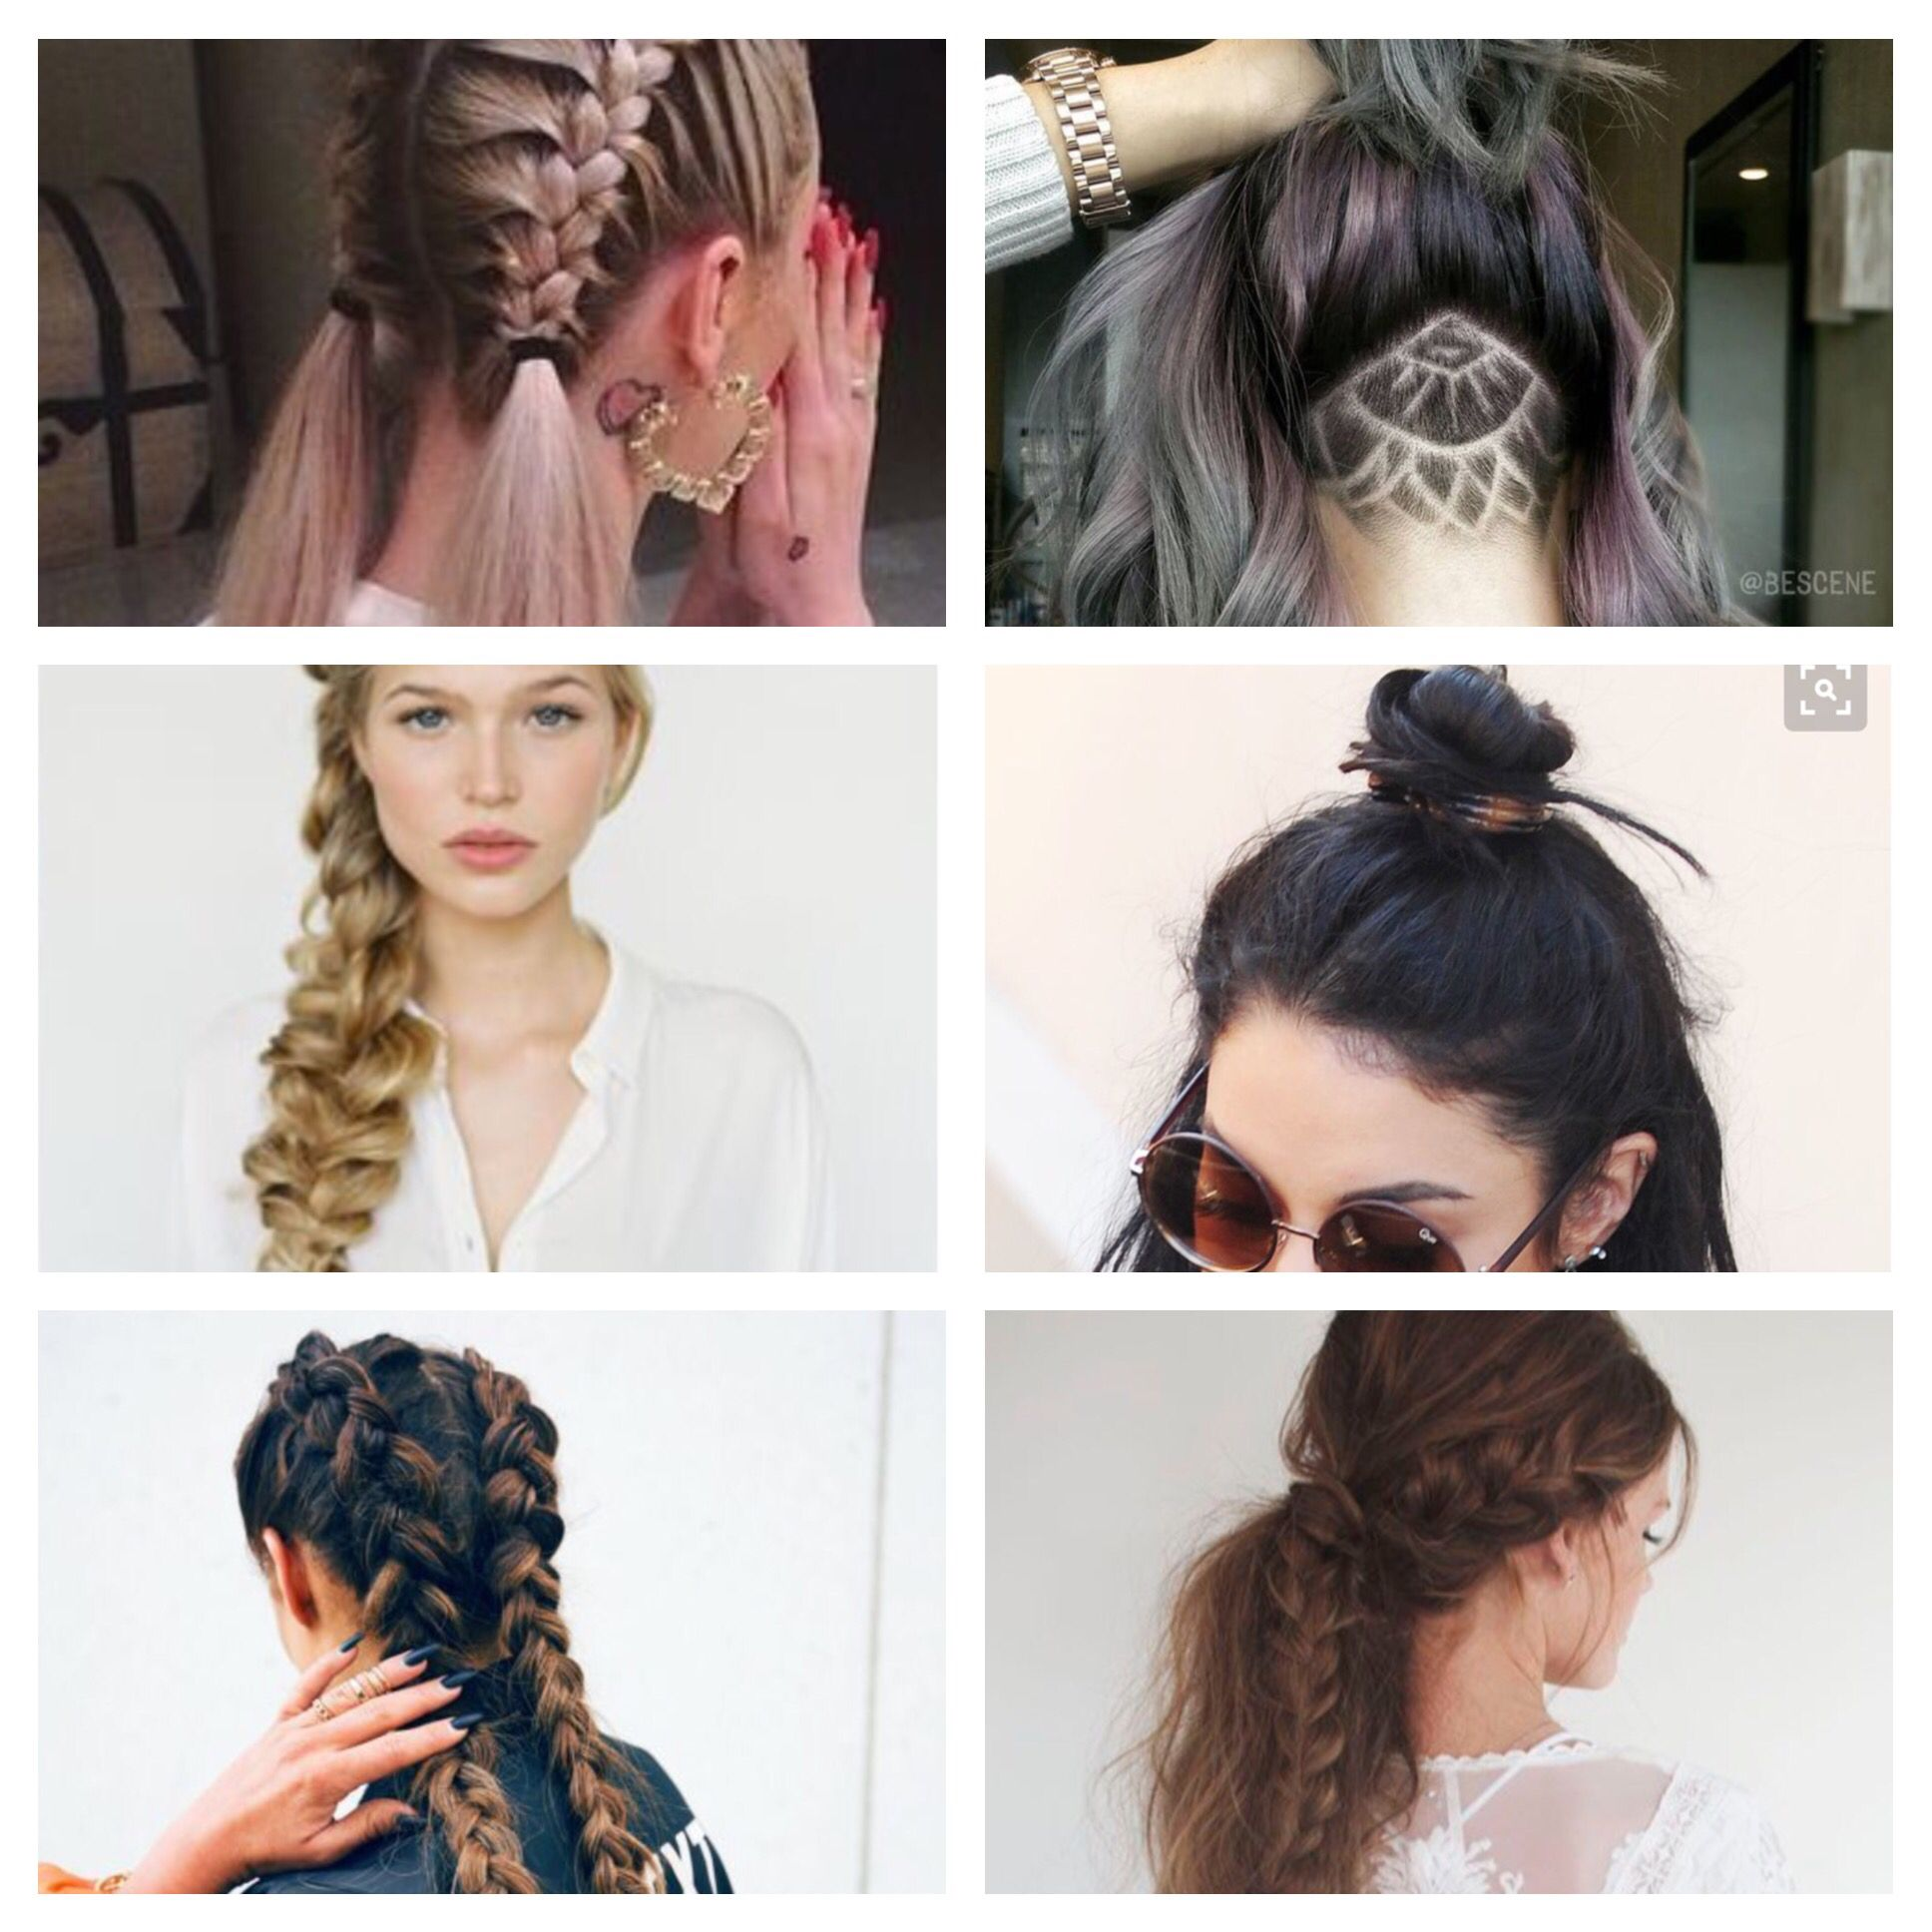 Try On Hairstyles Custom 10 Hairstyles To Try This Summer Checkout More Images On The Blog